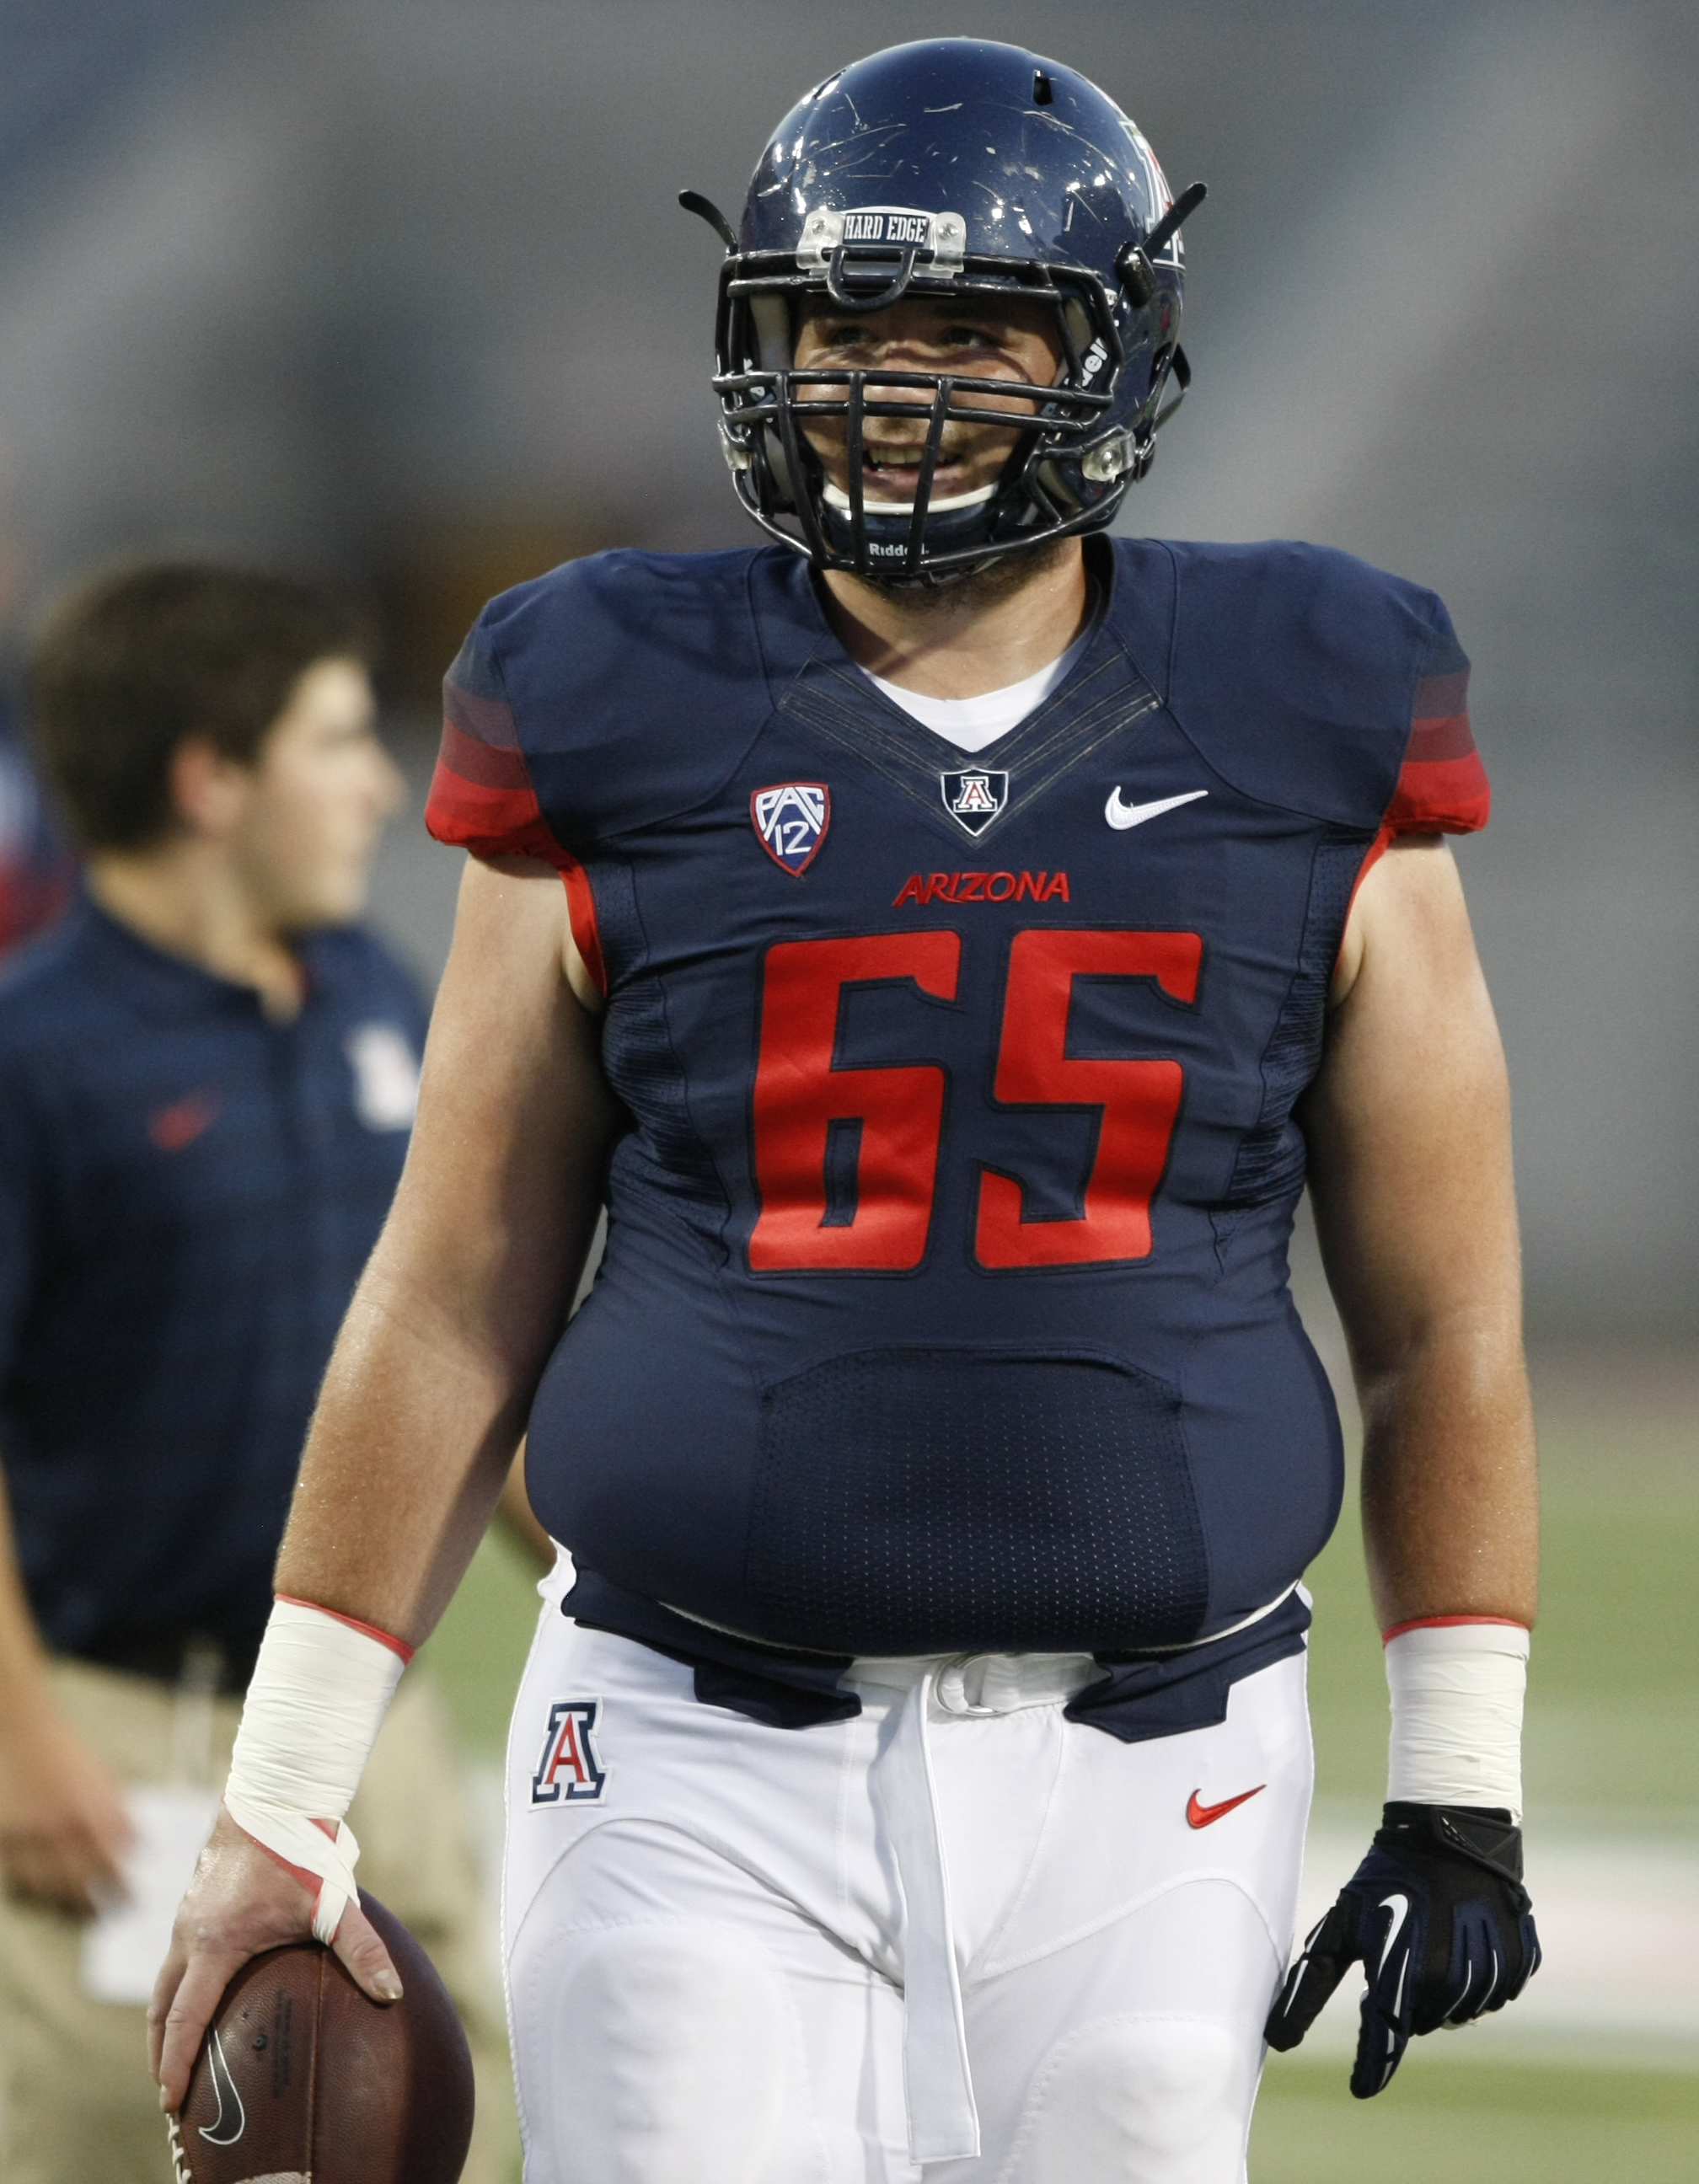 Arizona offensive linesman Zach Hemmila (65) against UNLV during the first half of the NCAA college football game, Friday, Aug. 29, 2014, in Tucson, Ariz. (AP Photo/Rick Scuteri)